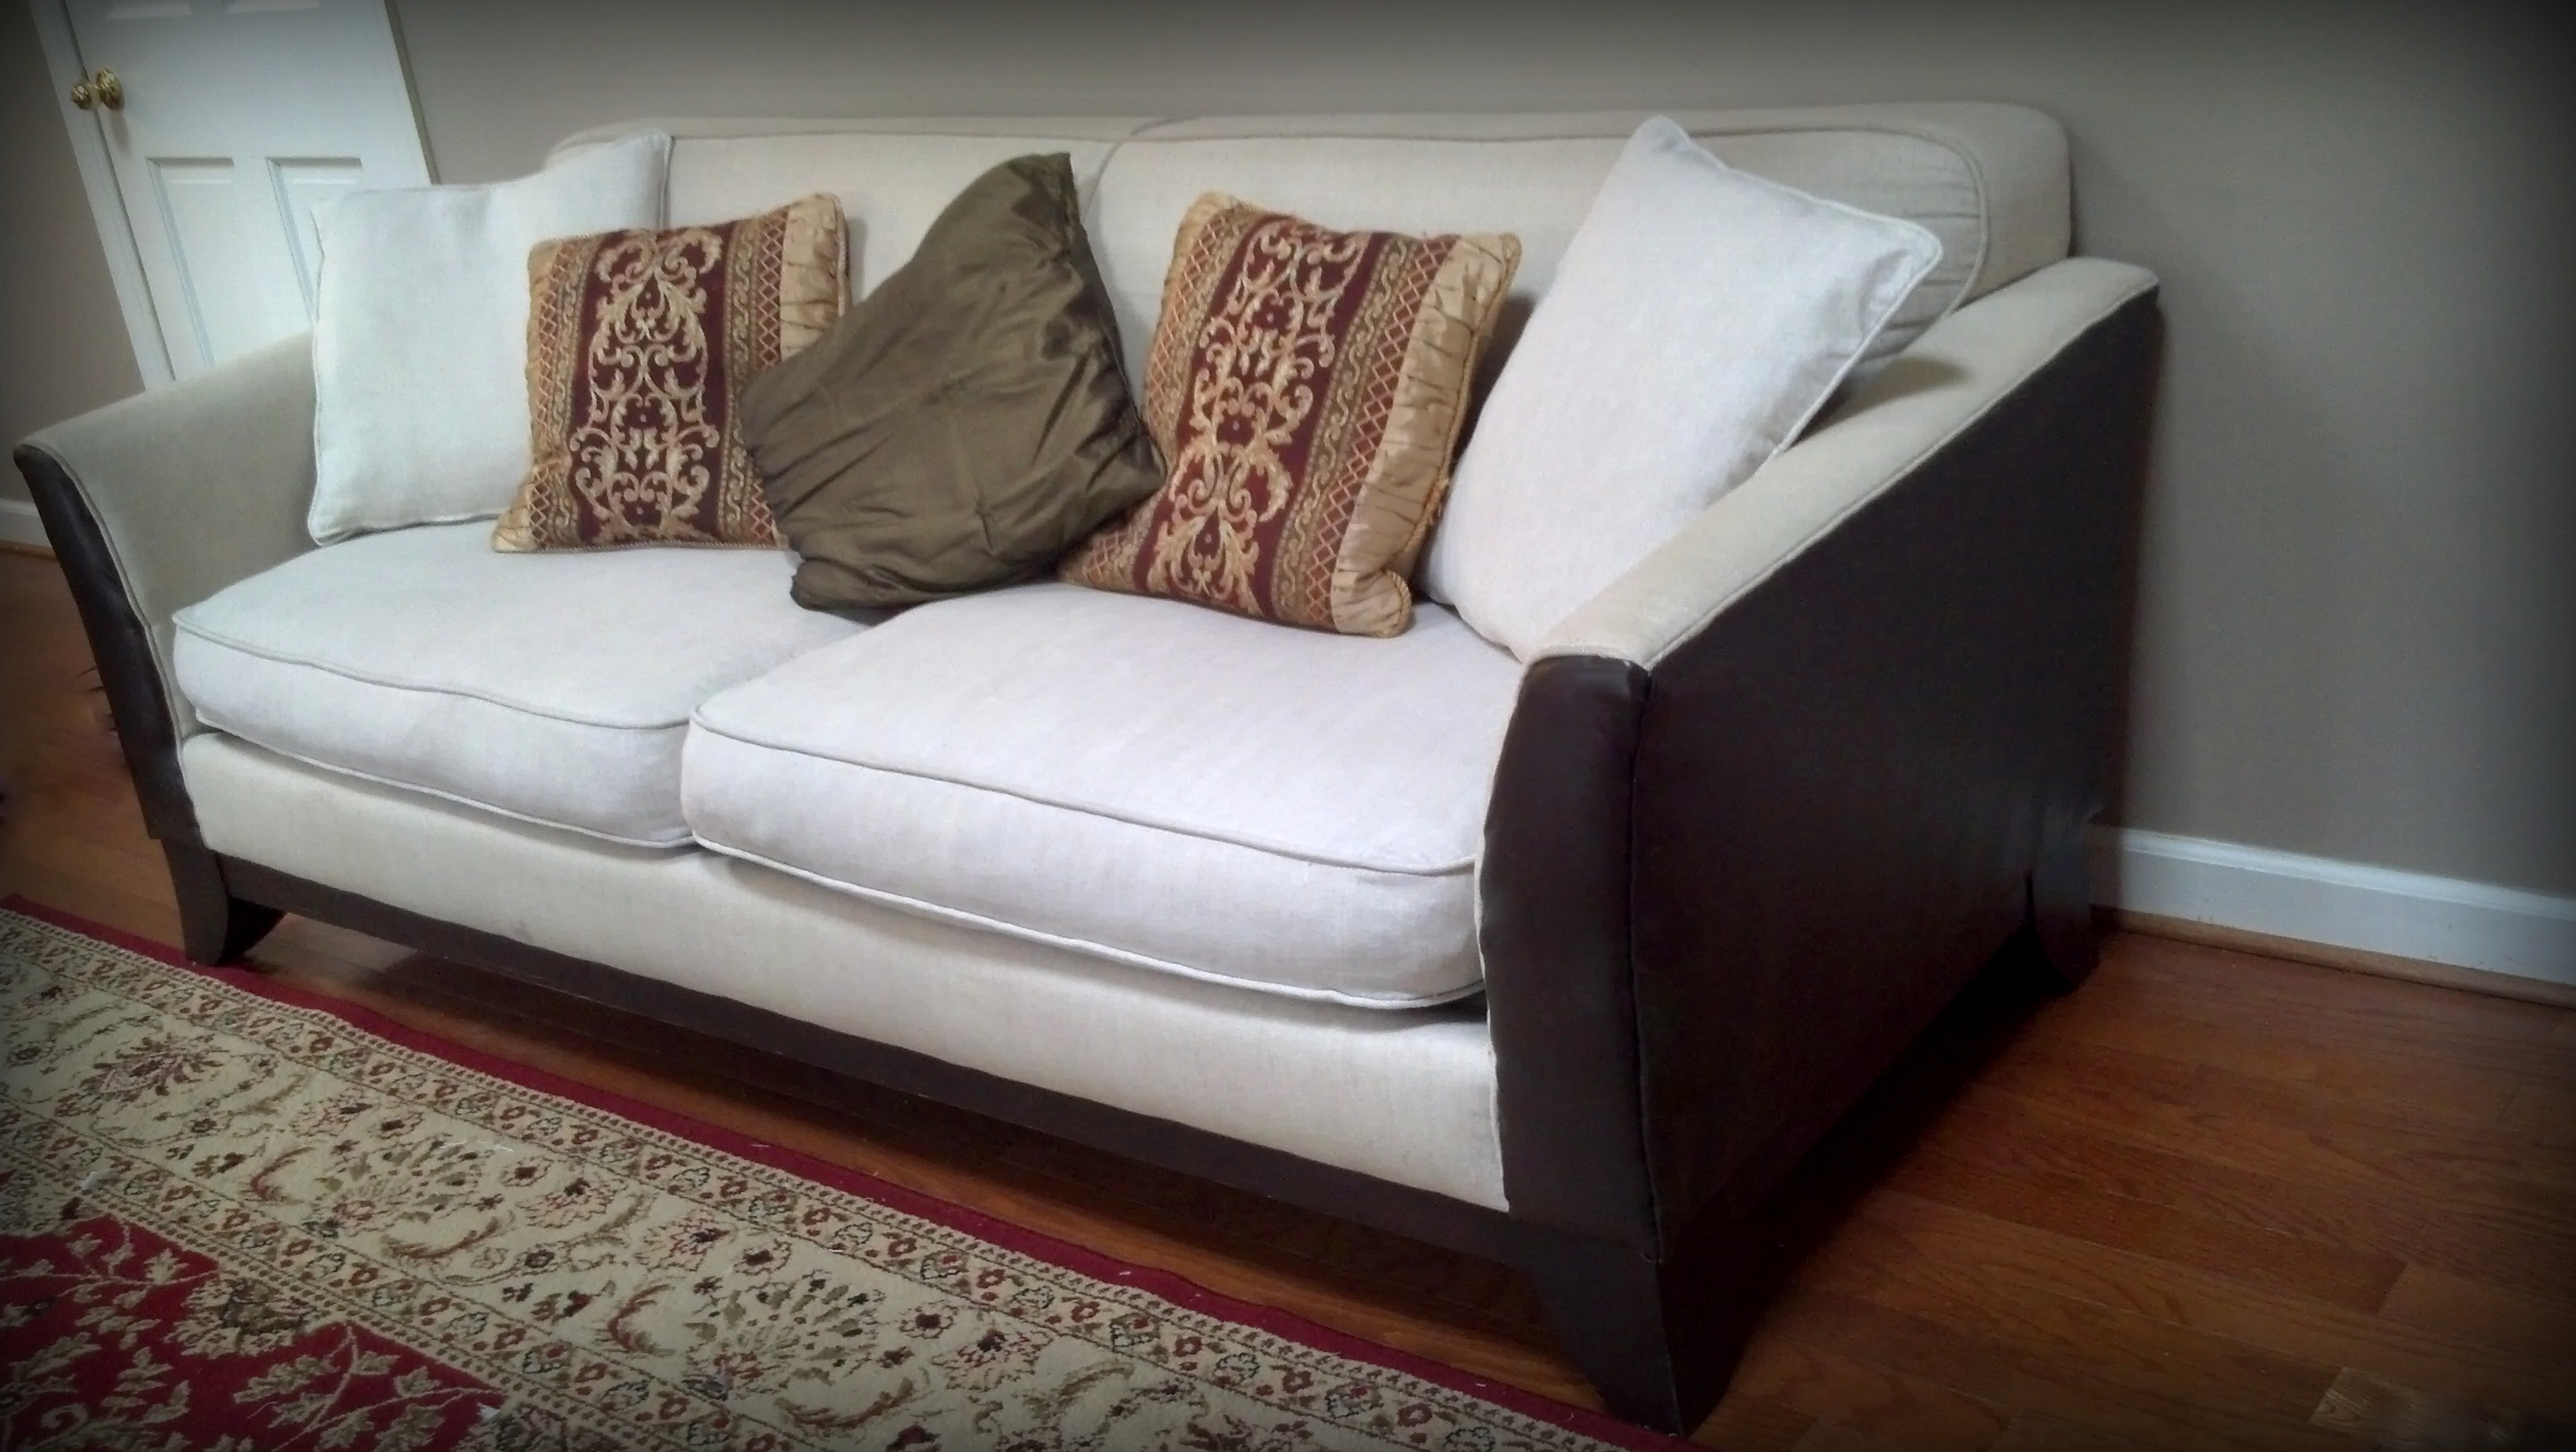 pottery barn basic sofa craigslist how do you repair a torn leather free couch and loveseat what  kristi hughes